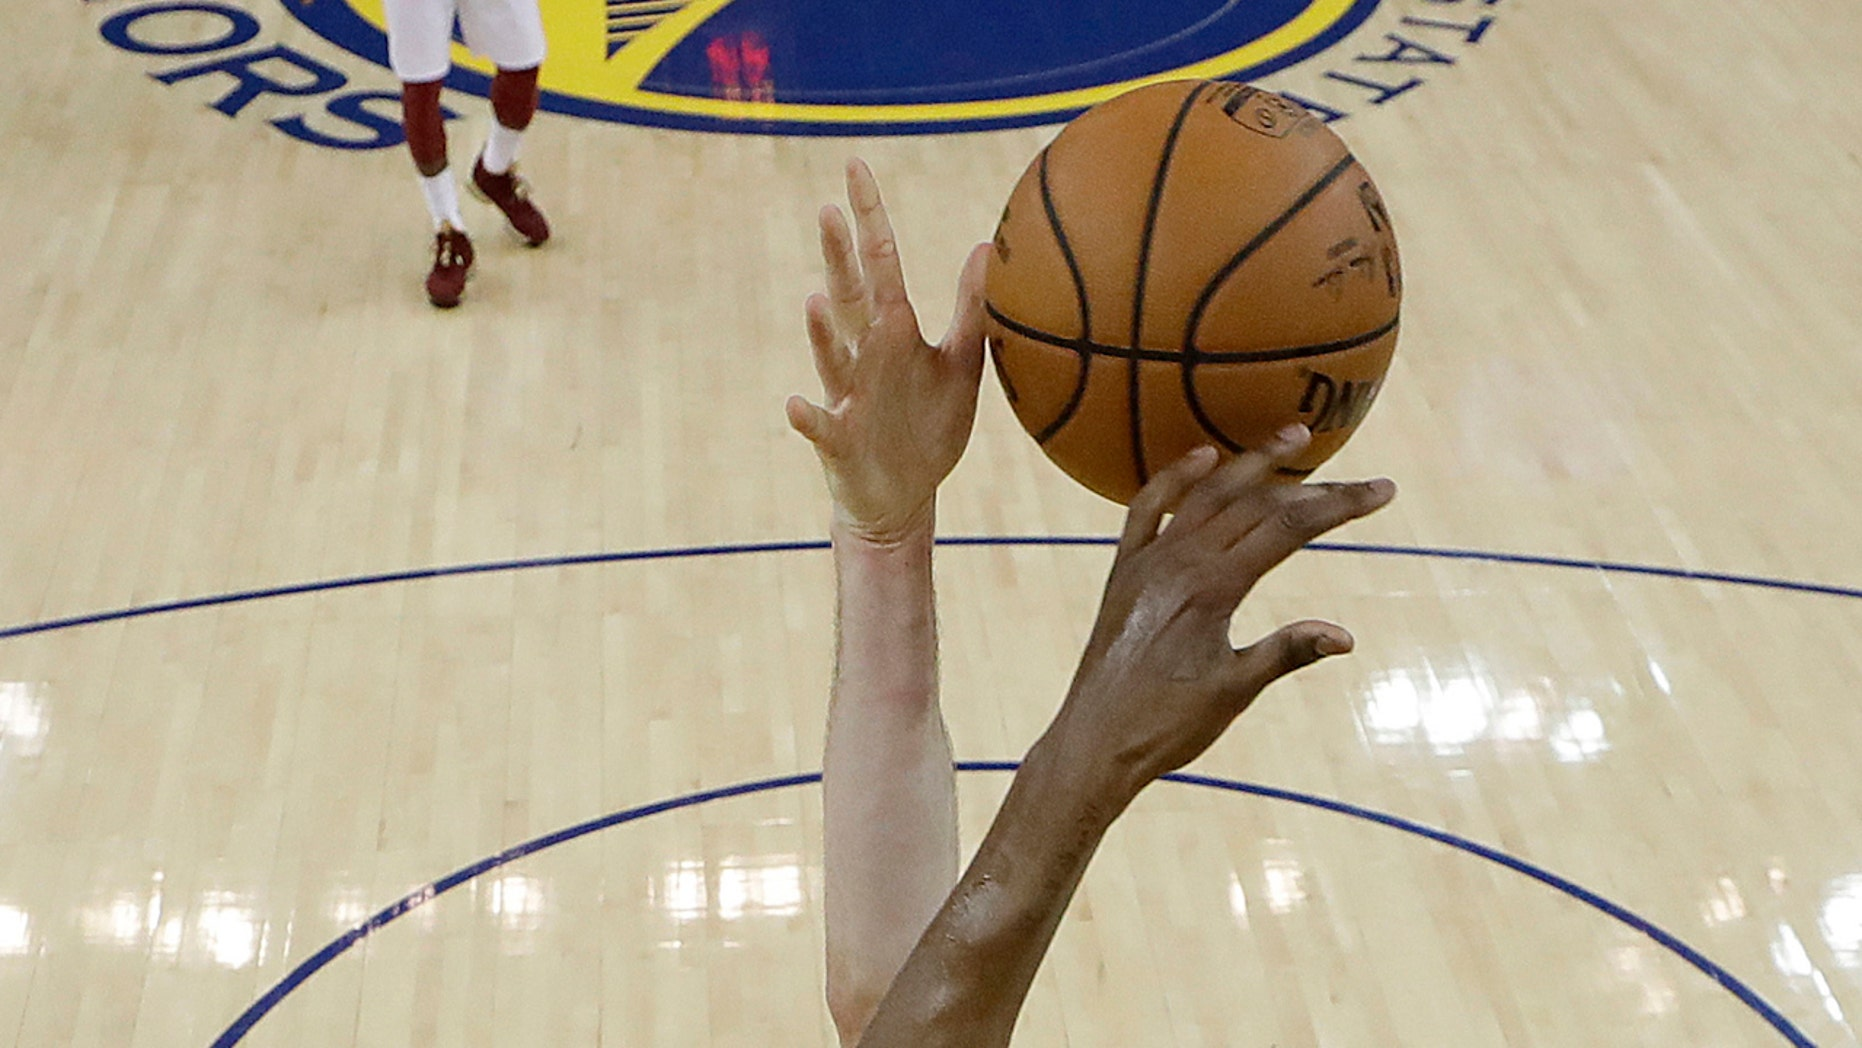 Players during the first half of Game 2 of basketball's NBA Finals in Oakland, Calif., June 3, 2018.